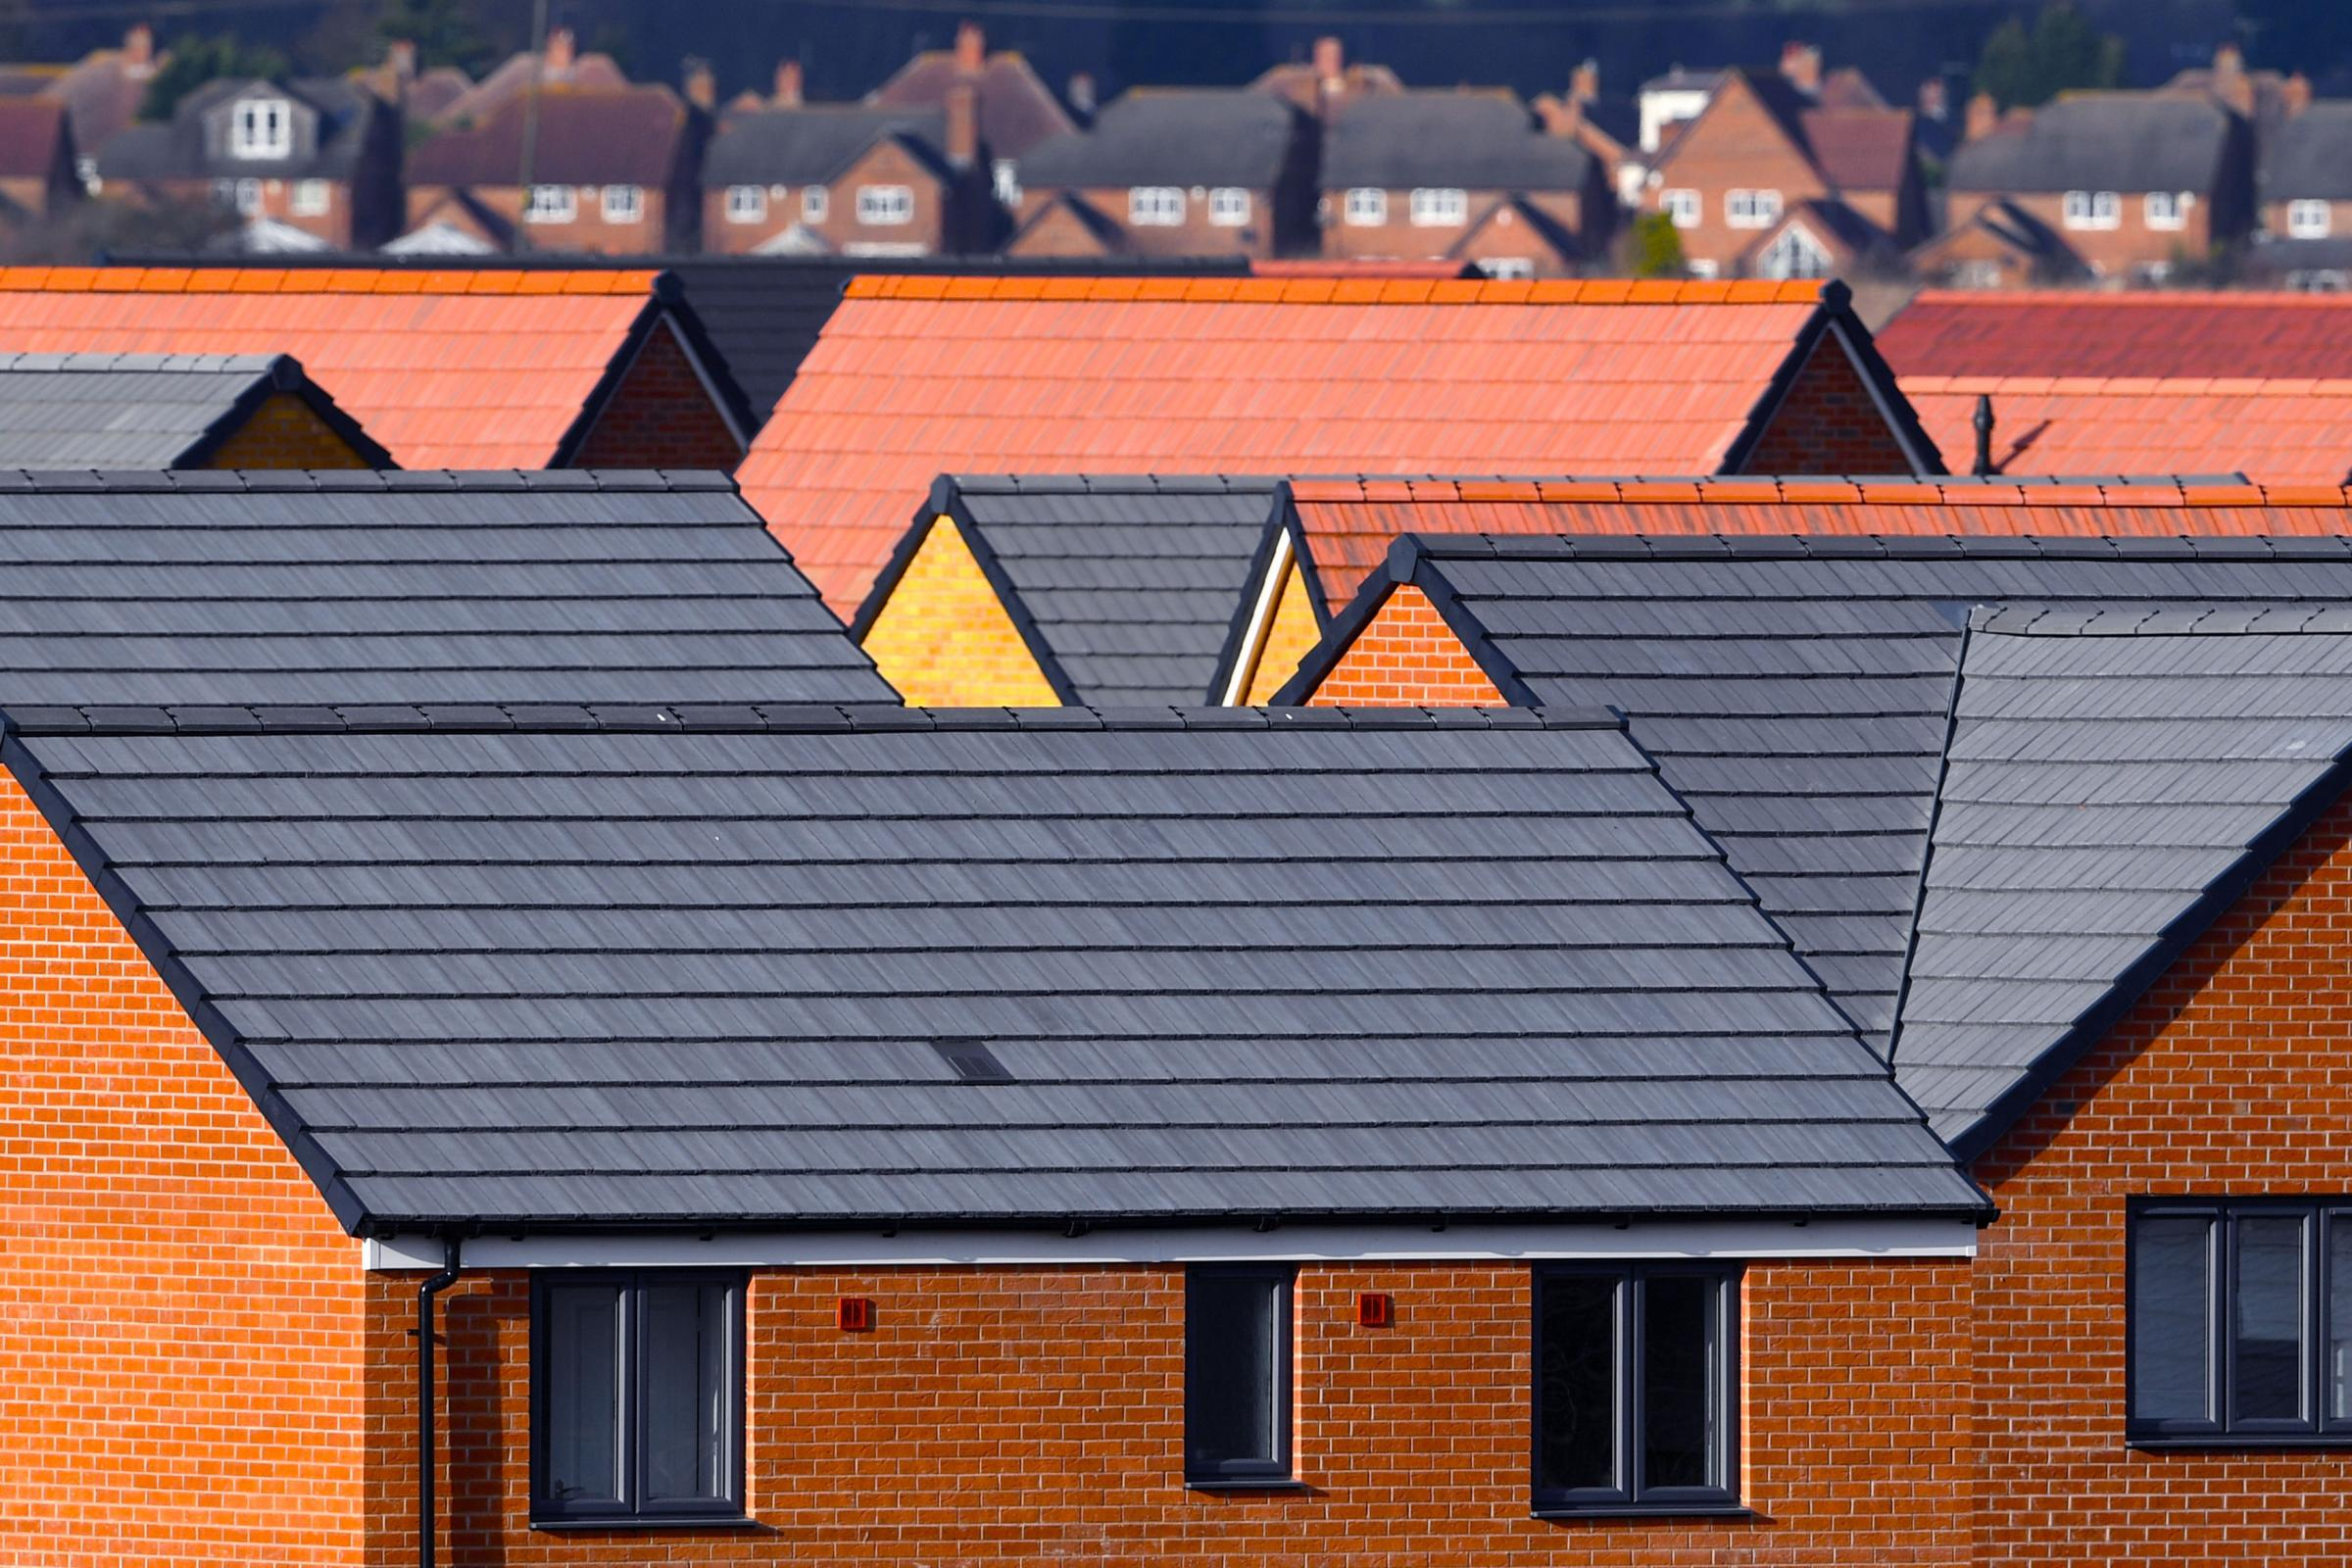 Newly constructed houses. Photo: Joe Giddens/PA Wire.